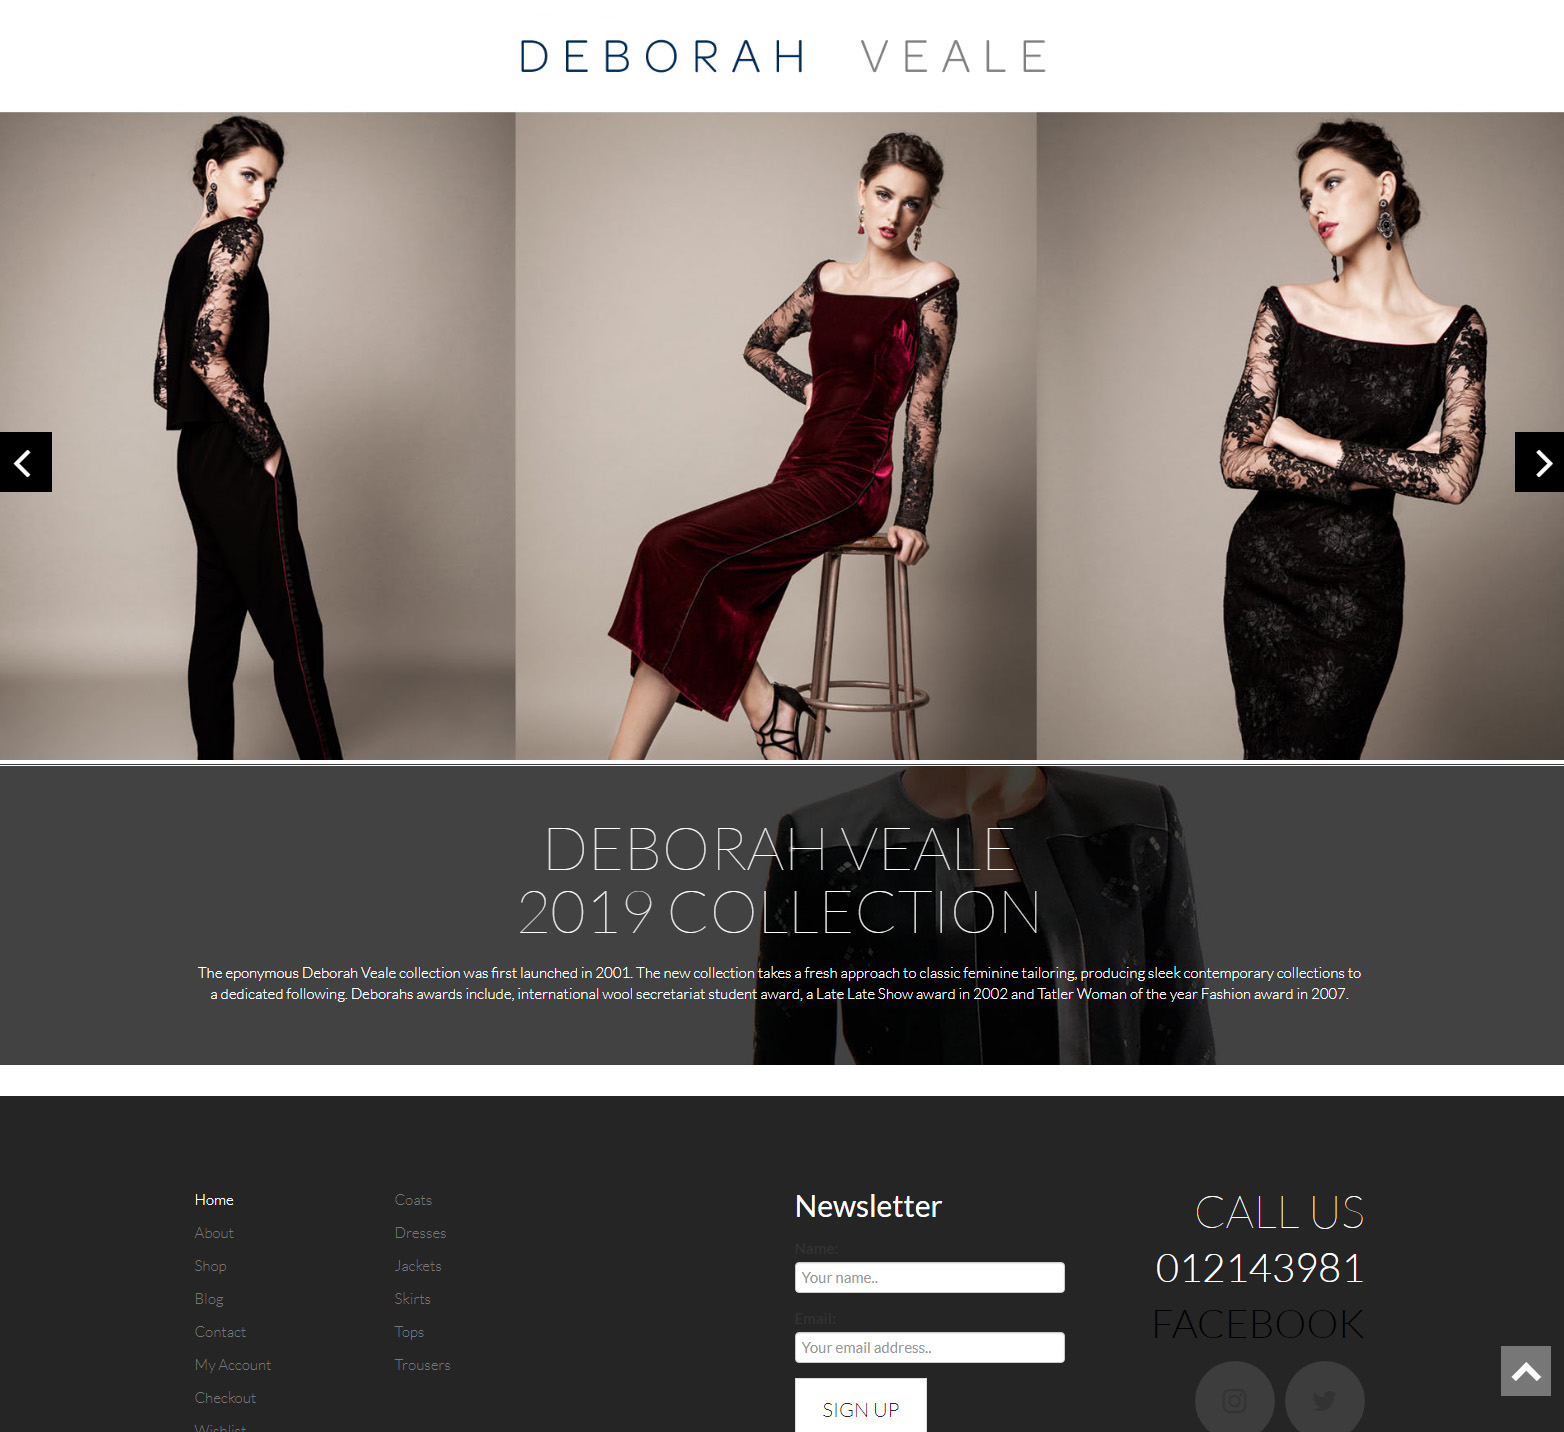 deborah veale website